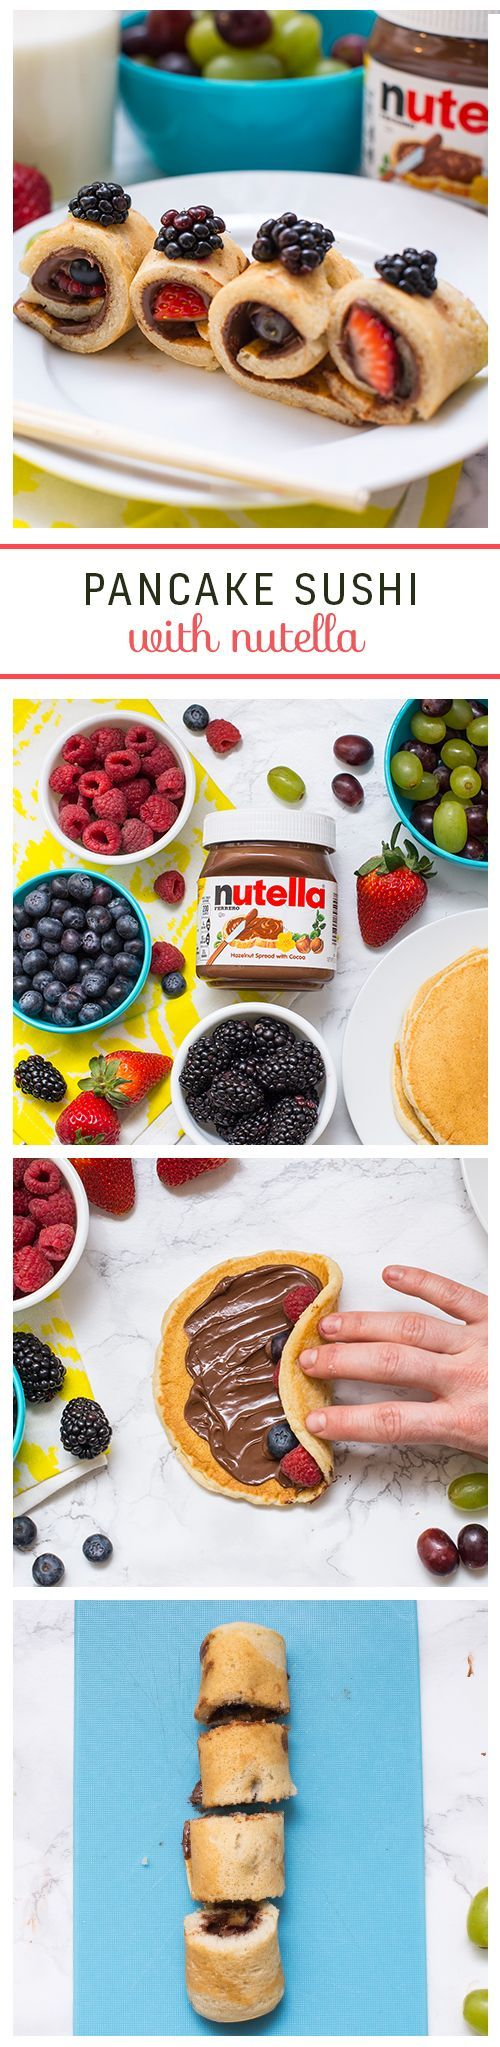 Roll up to breakfast in style with pancake and Nutella® sushi. Start by spreading Nutella on the pancake, then place a row of fruit on either end. Finish by rolling it up, slicing, and serving to the family. It's sure to make them very happy.